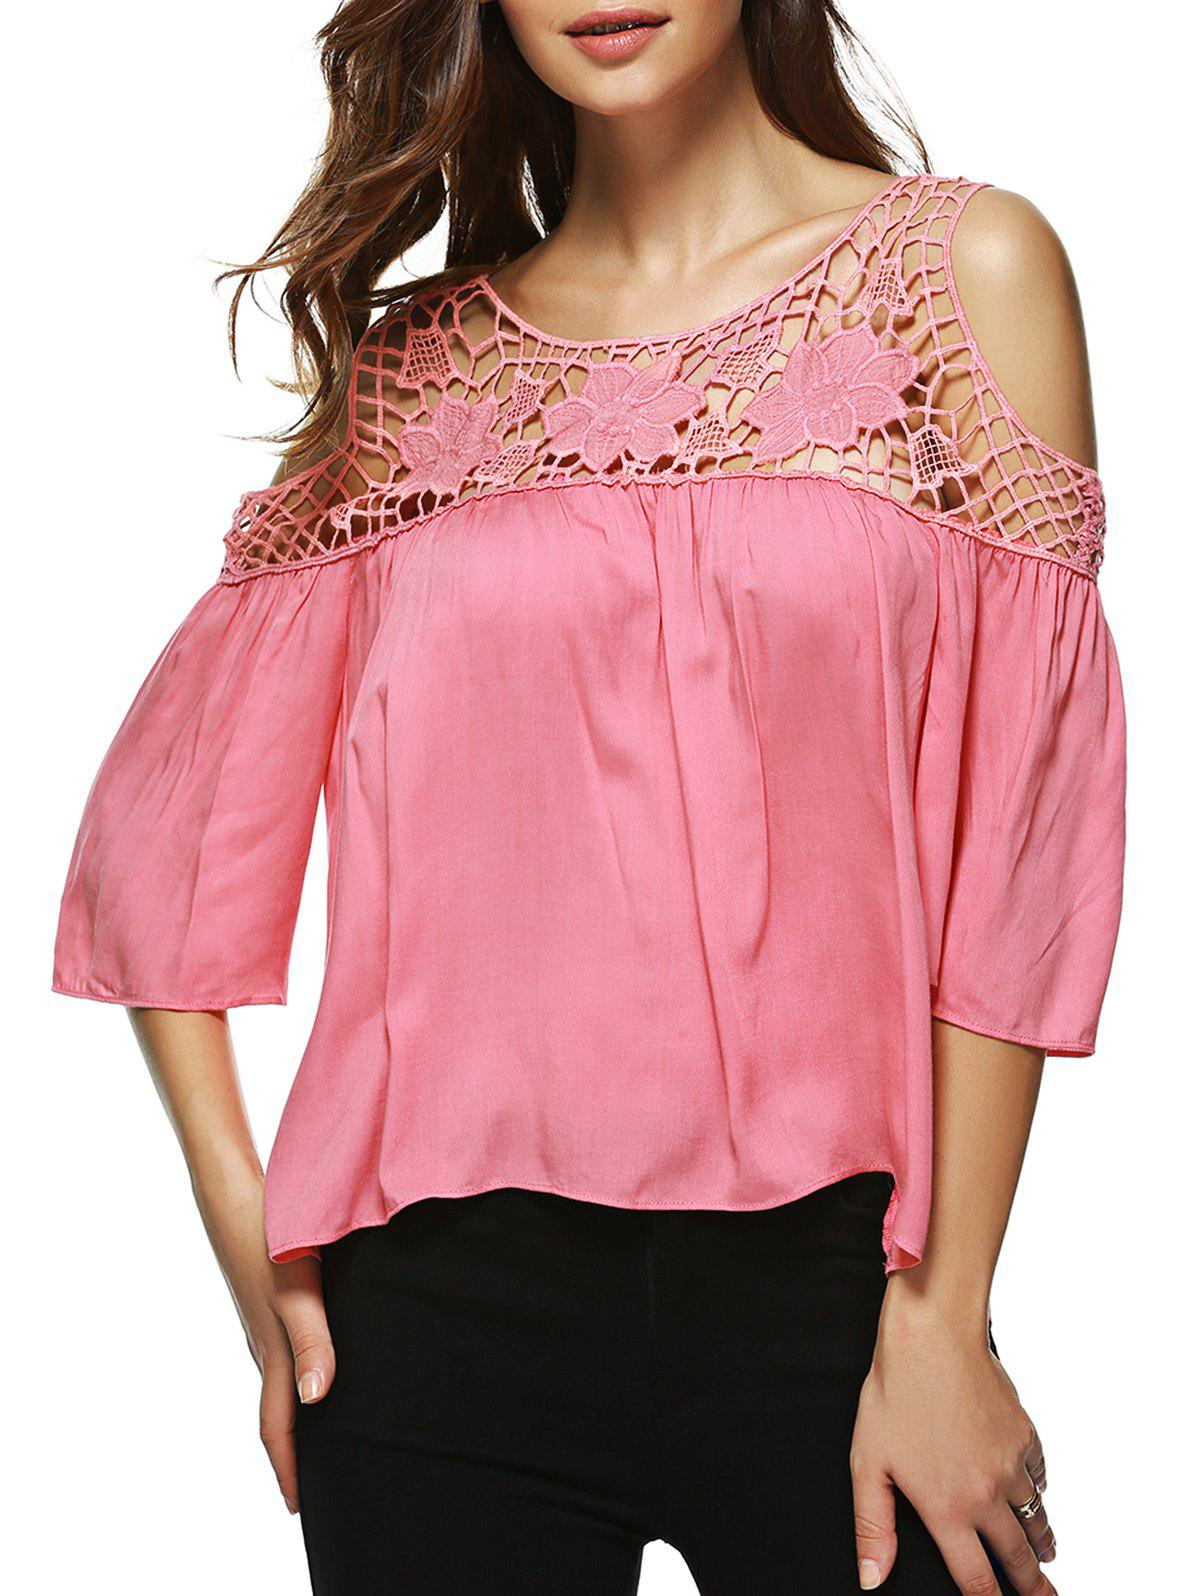 Lace Spliced Solid ColorHollow Out Blouse - PINK XL